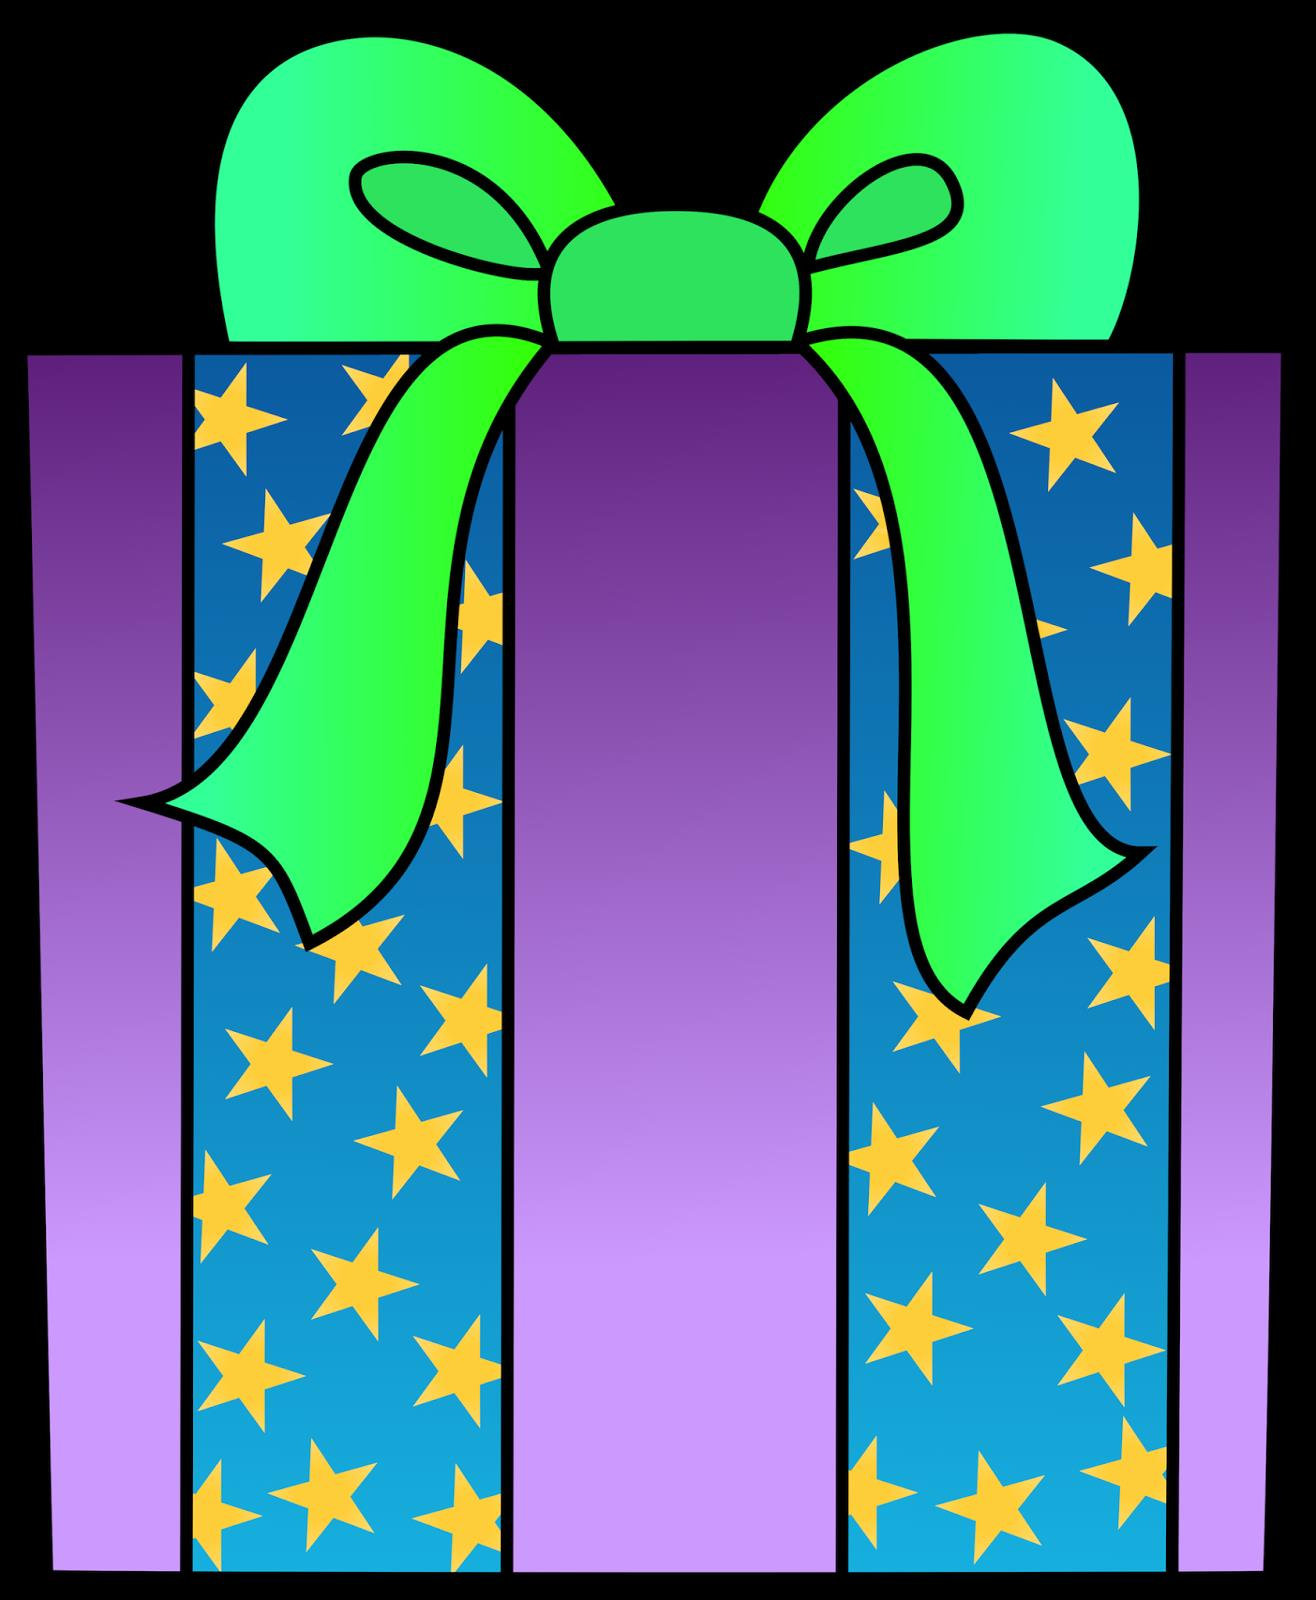 birthday present clipart ; Happy-birthday-present-clipart-free-images-2